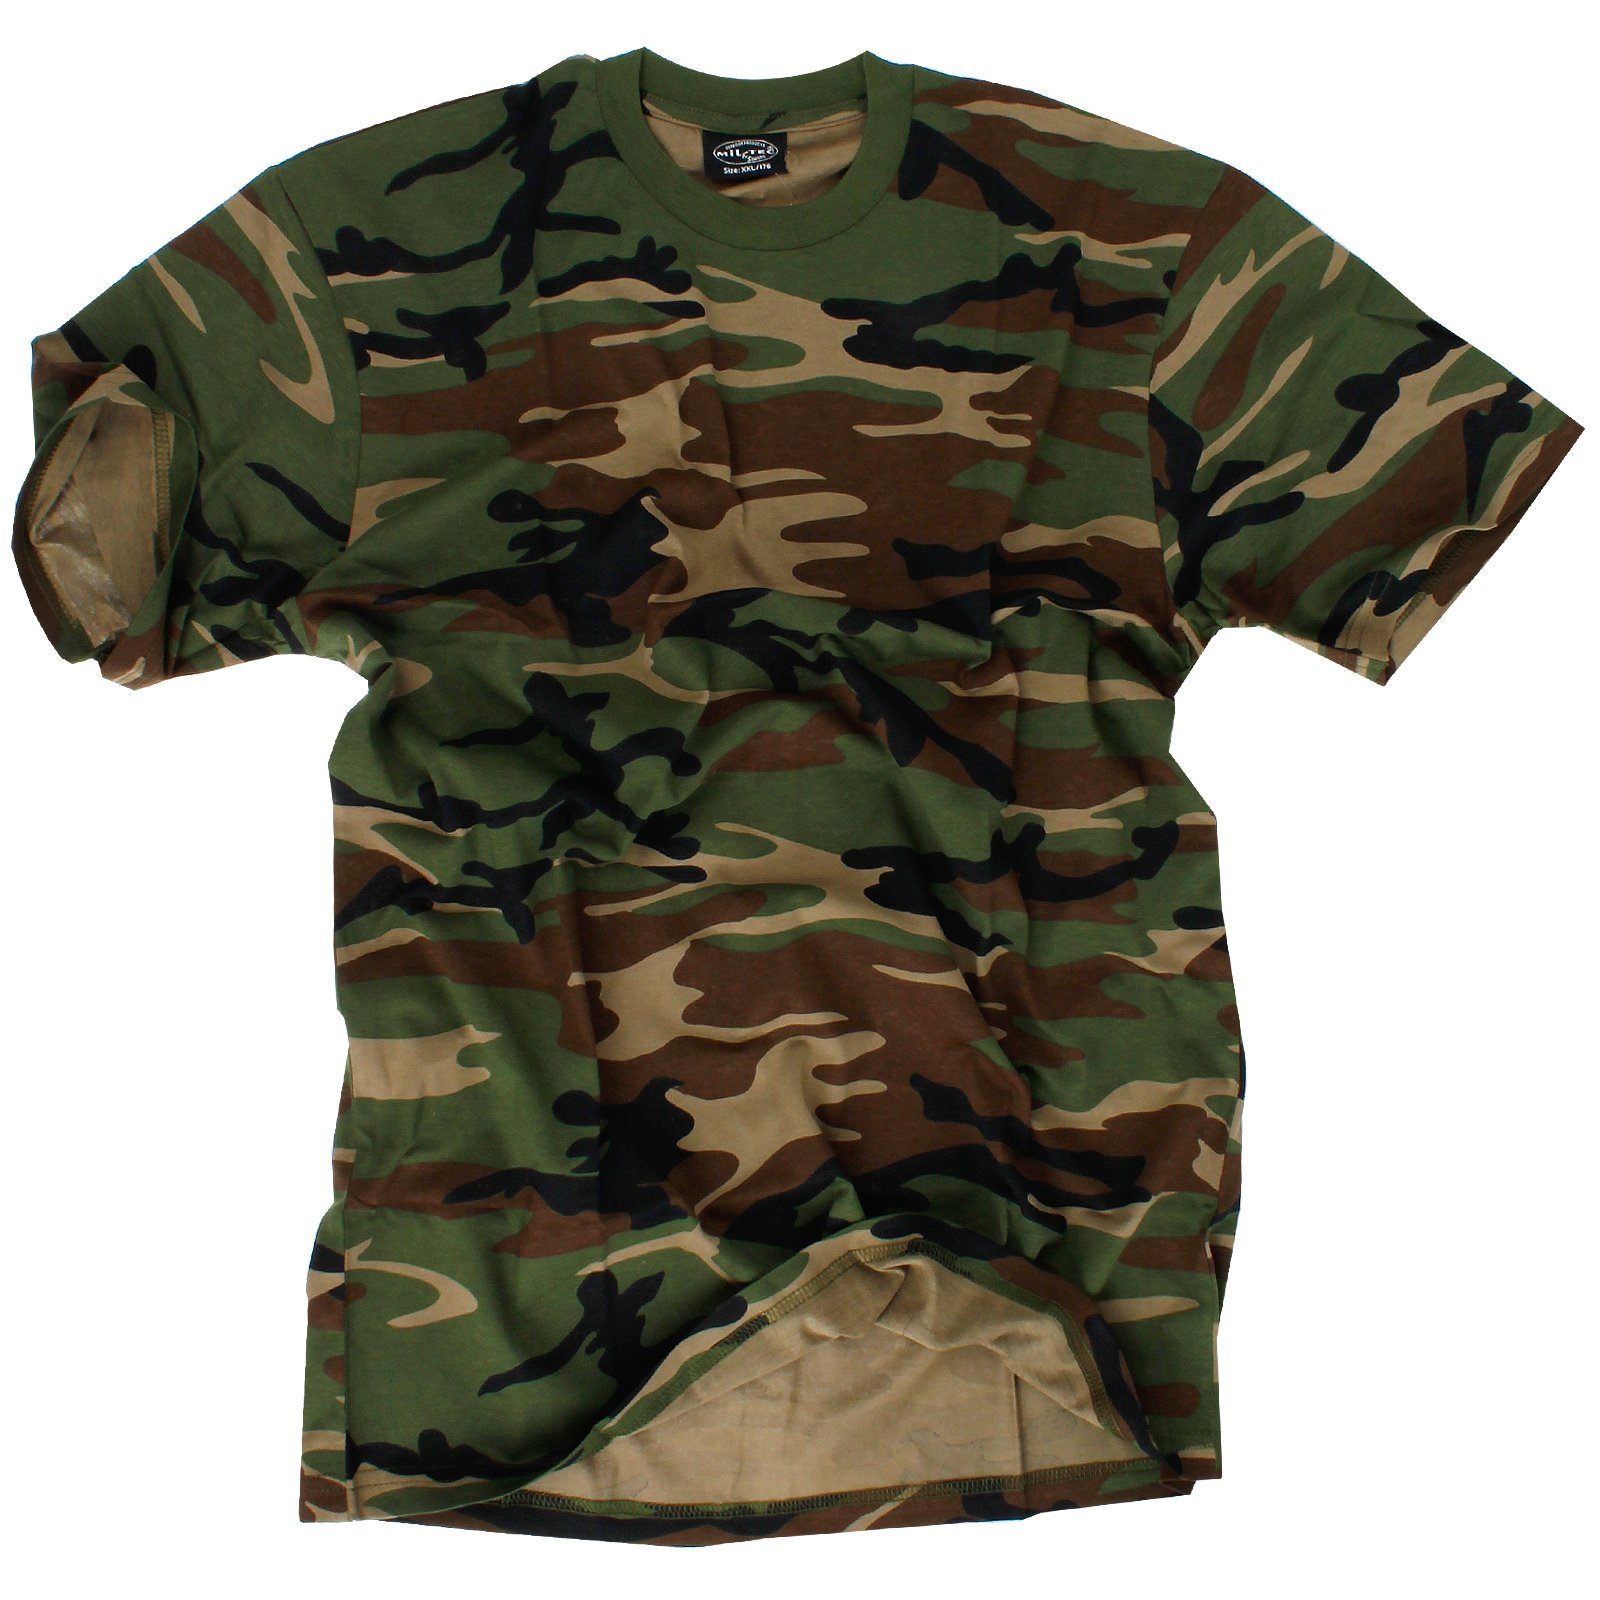 T shirt Damski Woodland Nowy woodland | MILITARY CLOTHING